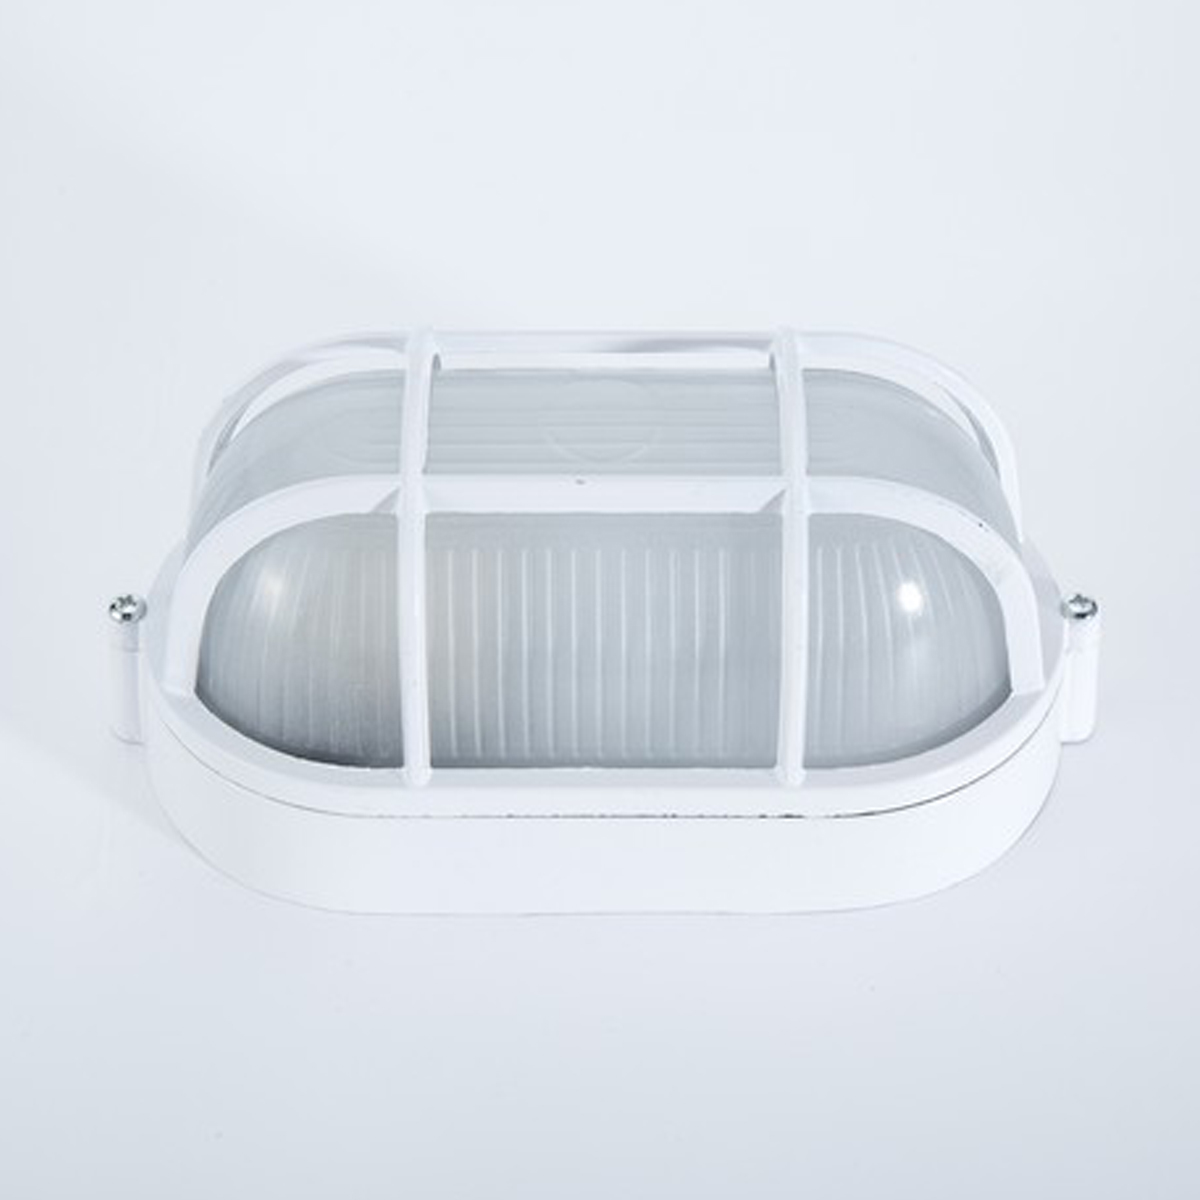 Oval Round Explosion Proof Vapor-proof Sauna Steam Room Light Lampshade Guard Accessory